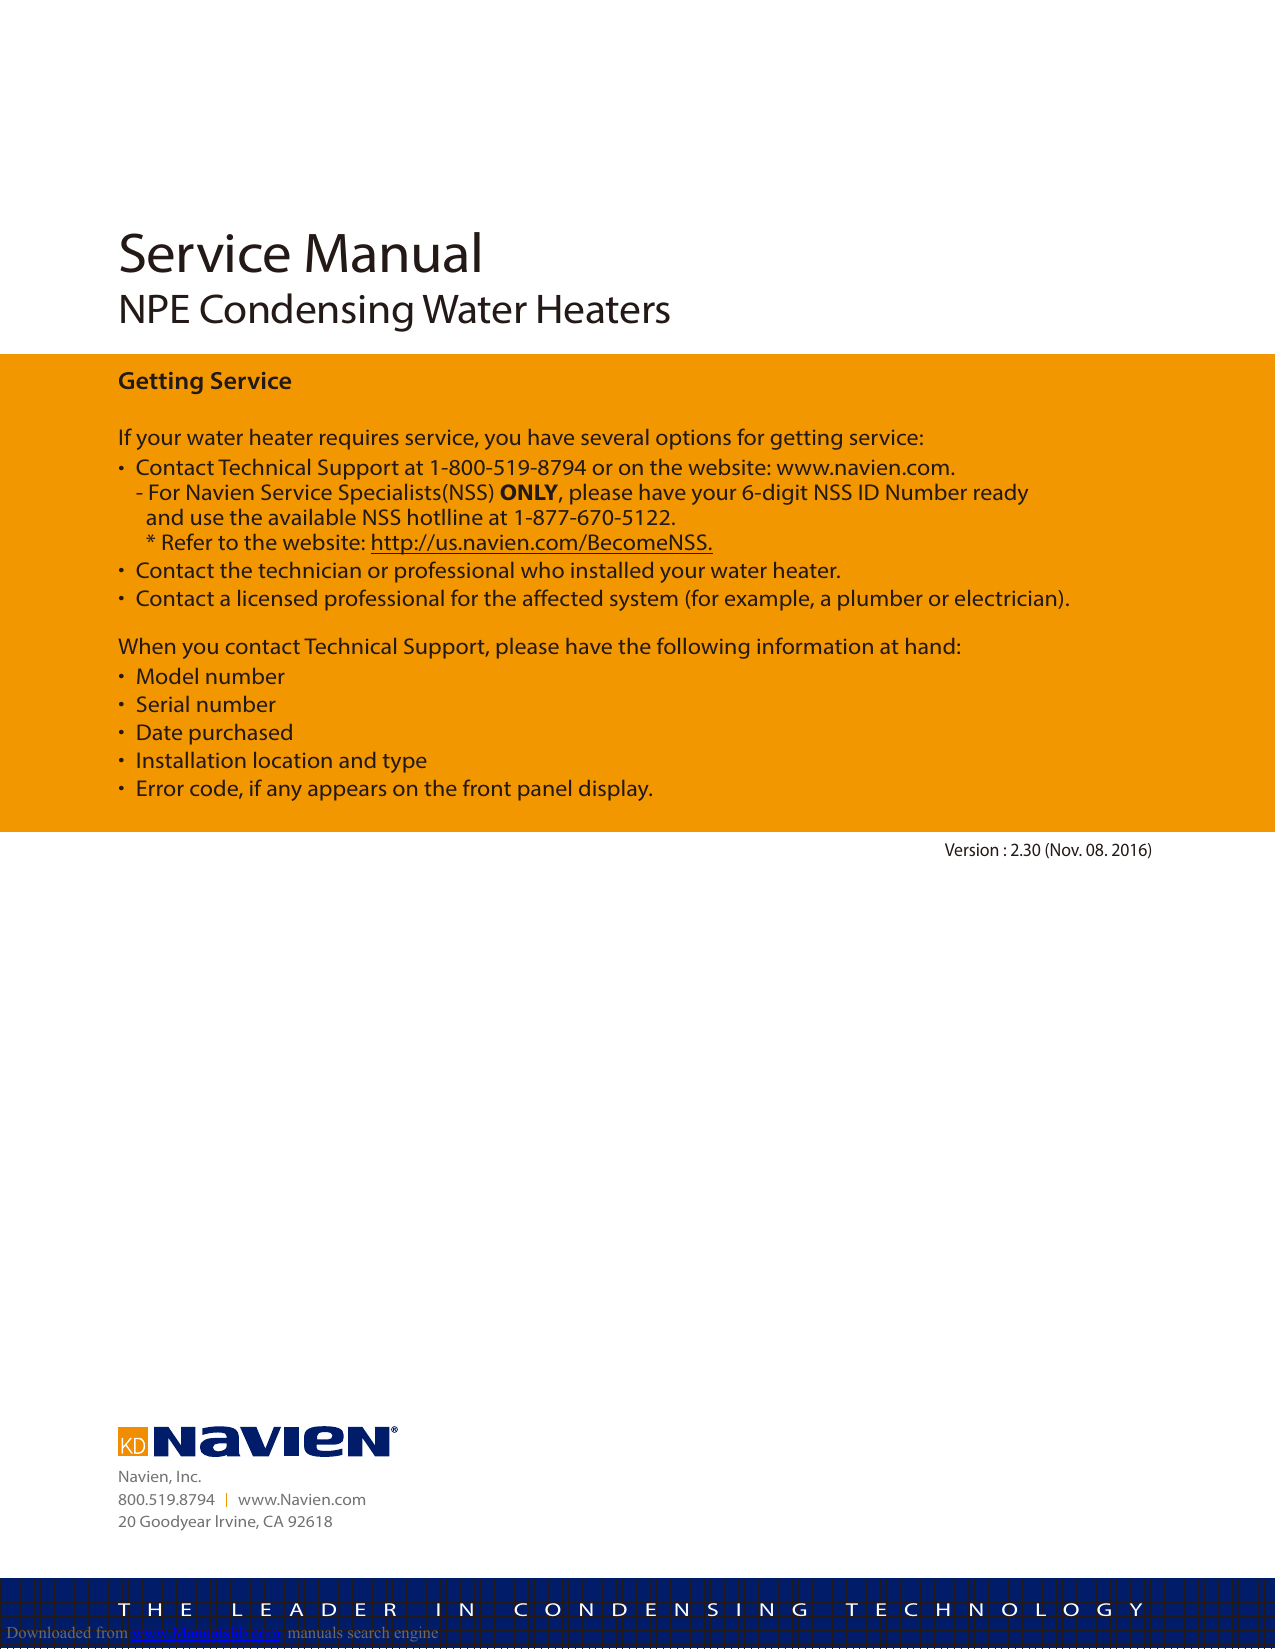 Navien NPE Service Instructions on